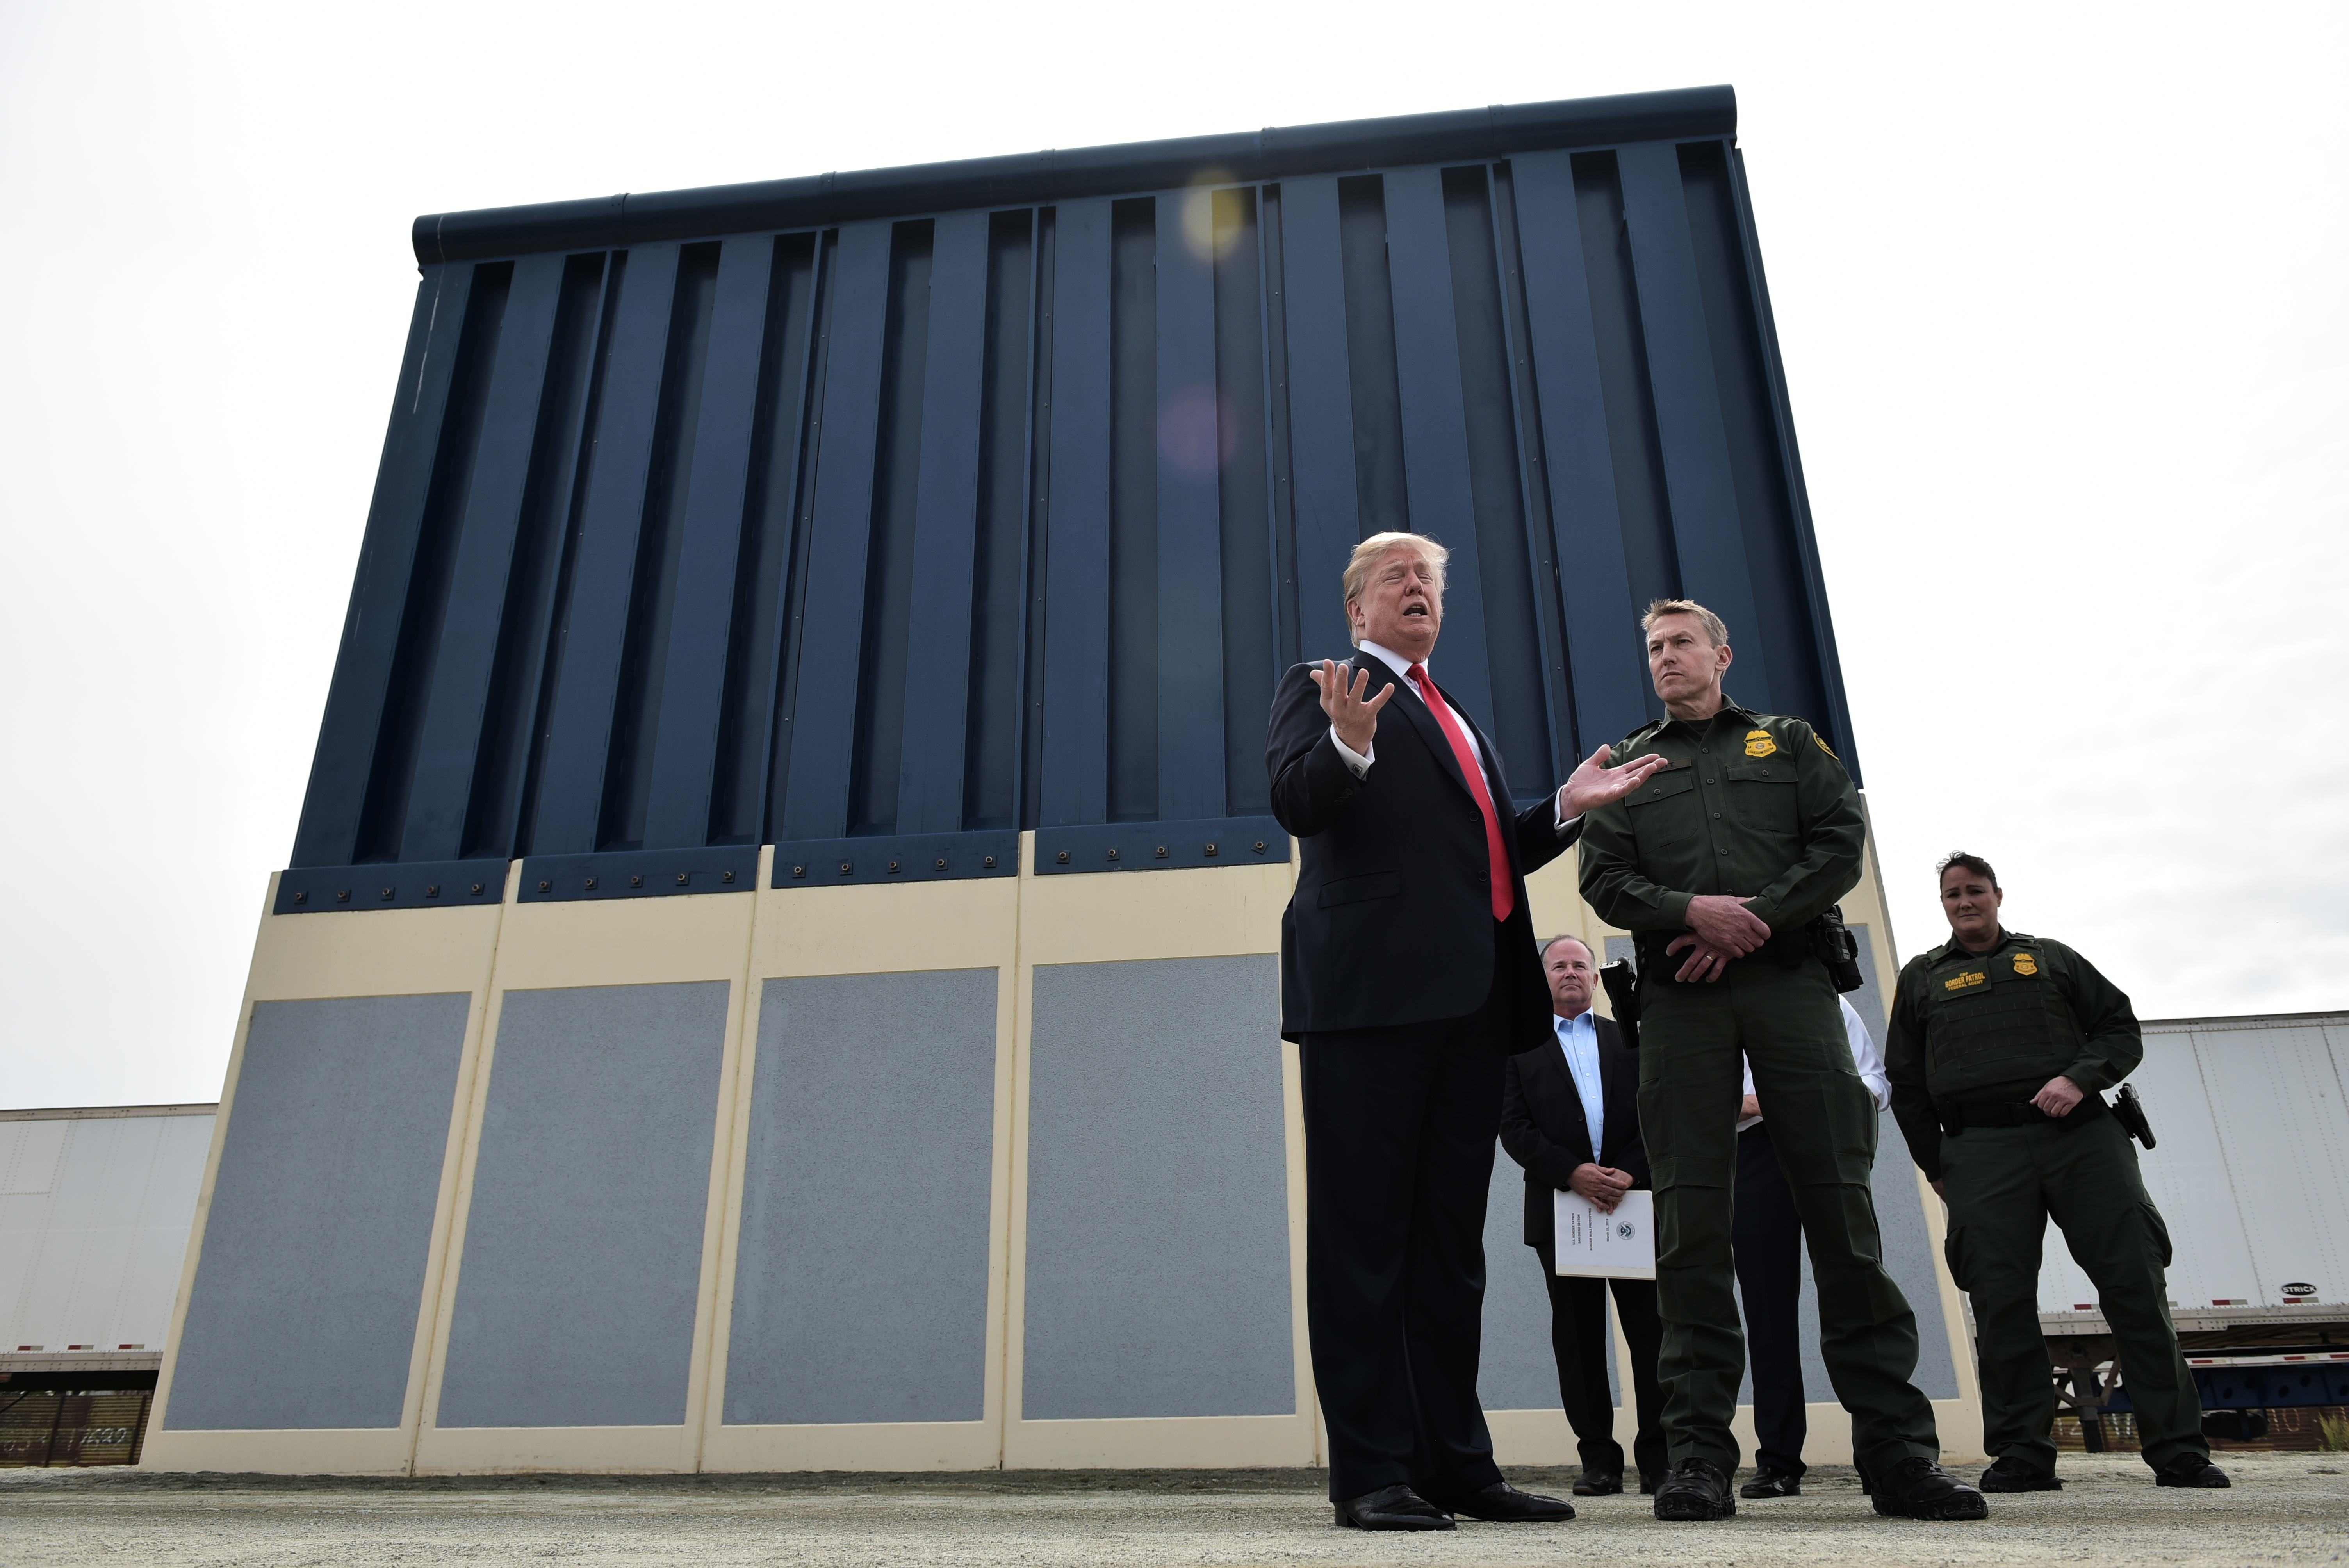 US President Donald Trump speaks during an inspection of border wall prototypes in San Diego, California on March 13, 2018. / AFP PHOTO / MANDEL NGAN